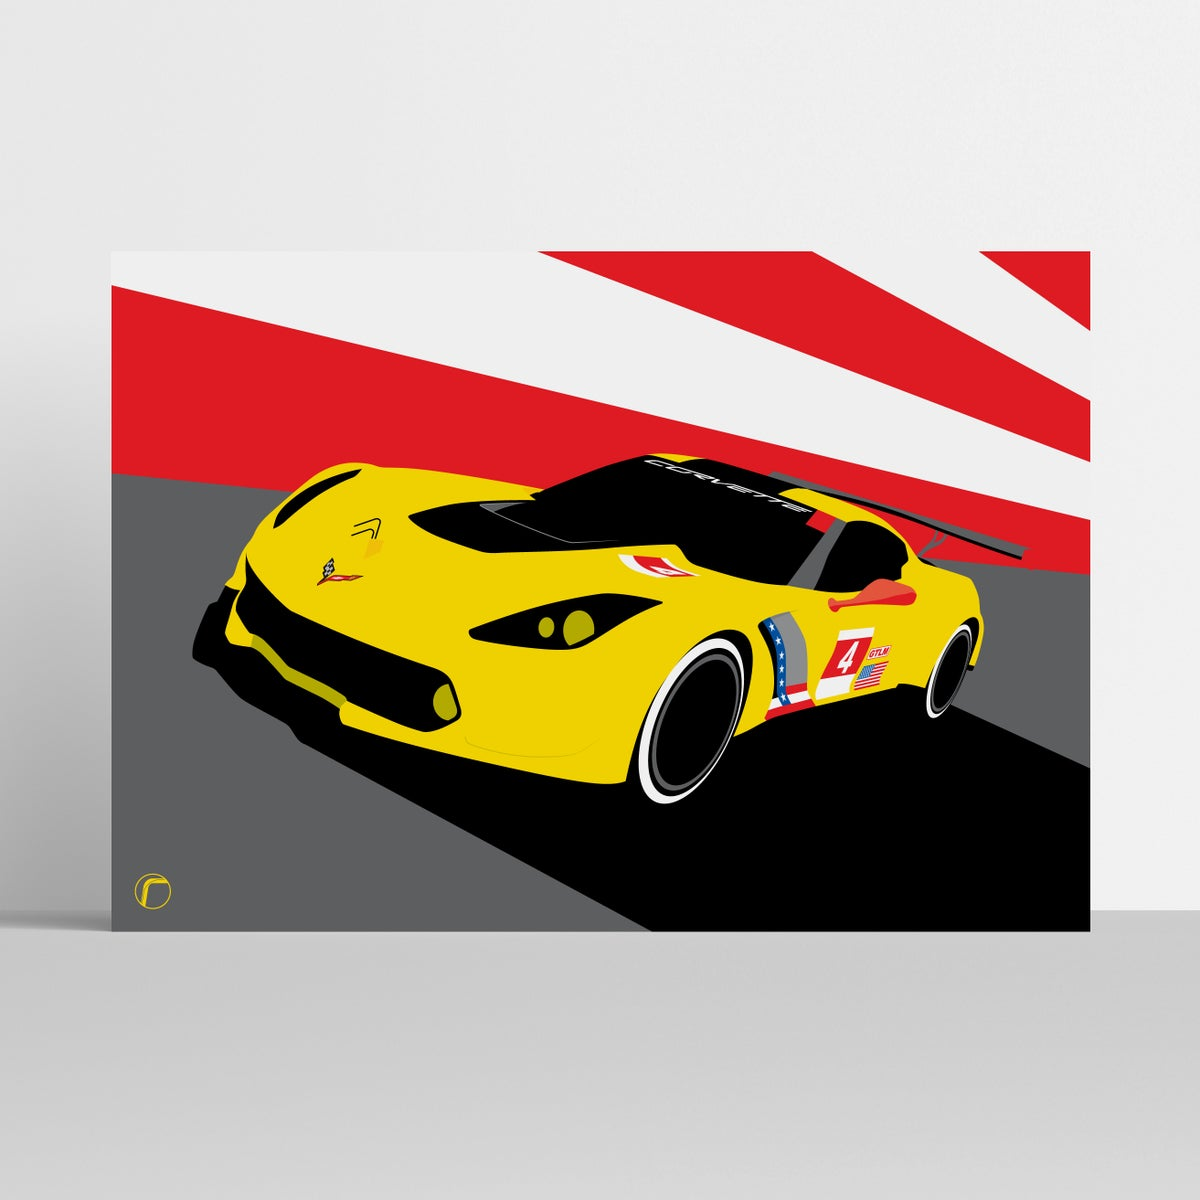 Image of Corvette Racing C7.R